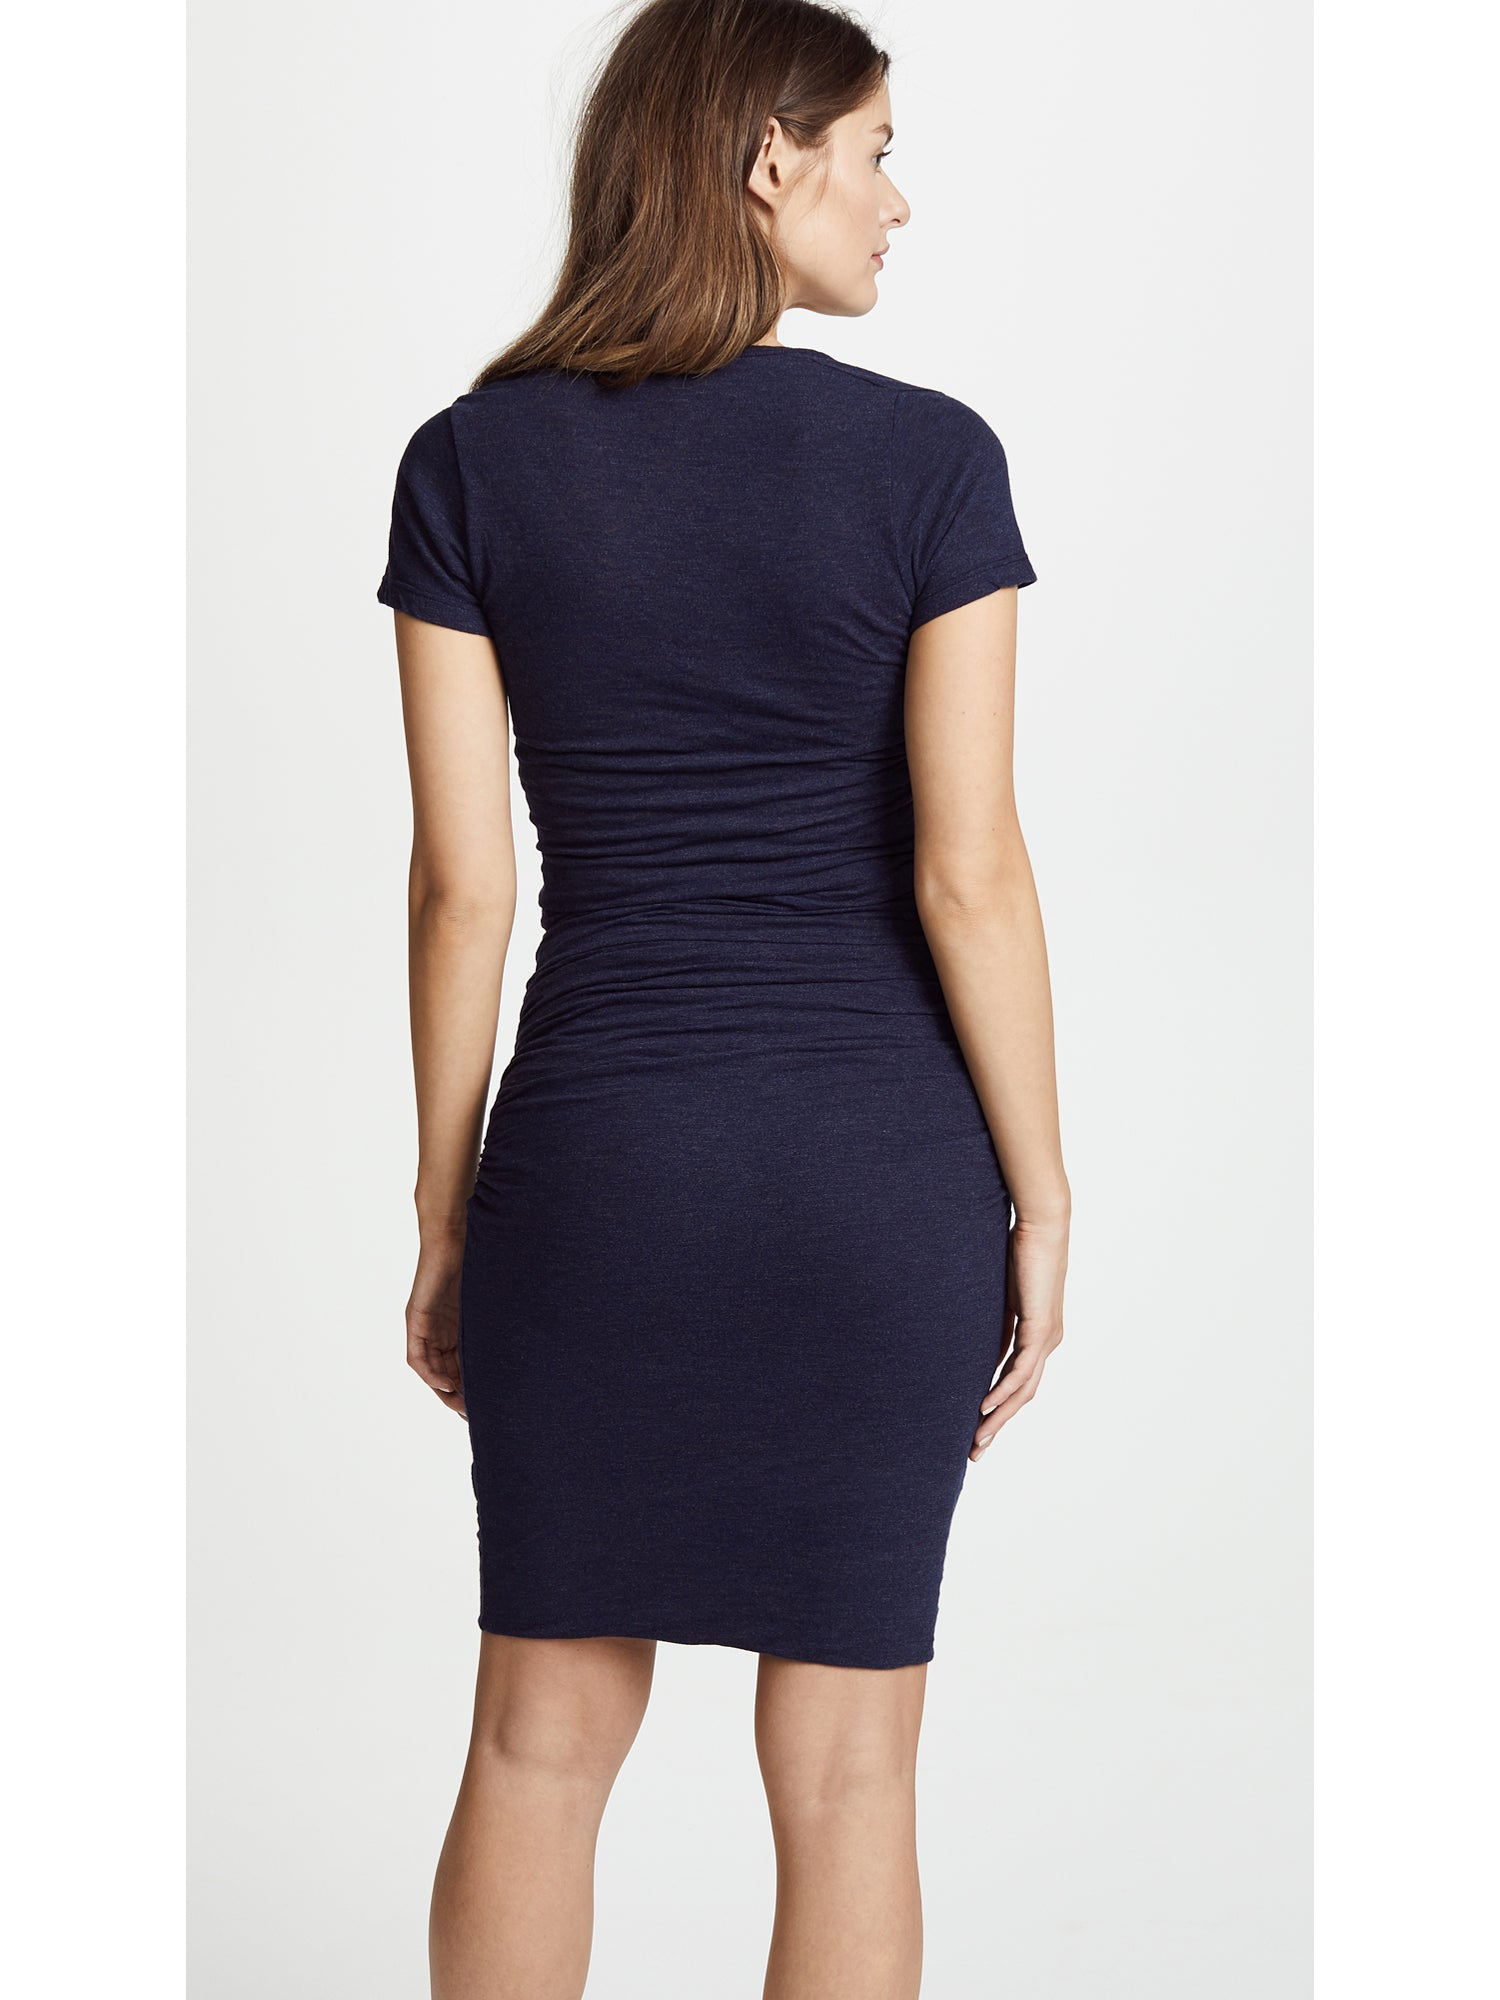 Monrow Maternity Shirred Tee Dress - Navy | TILDEN